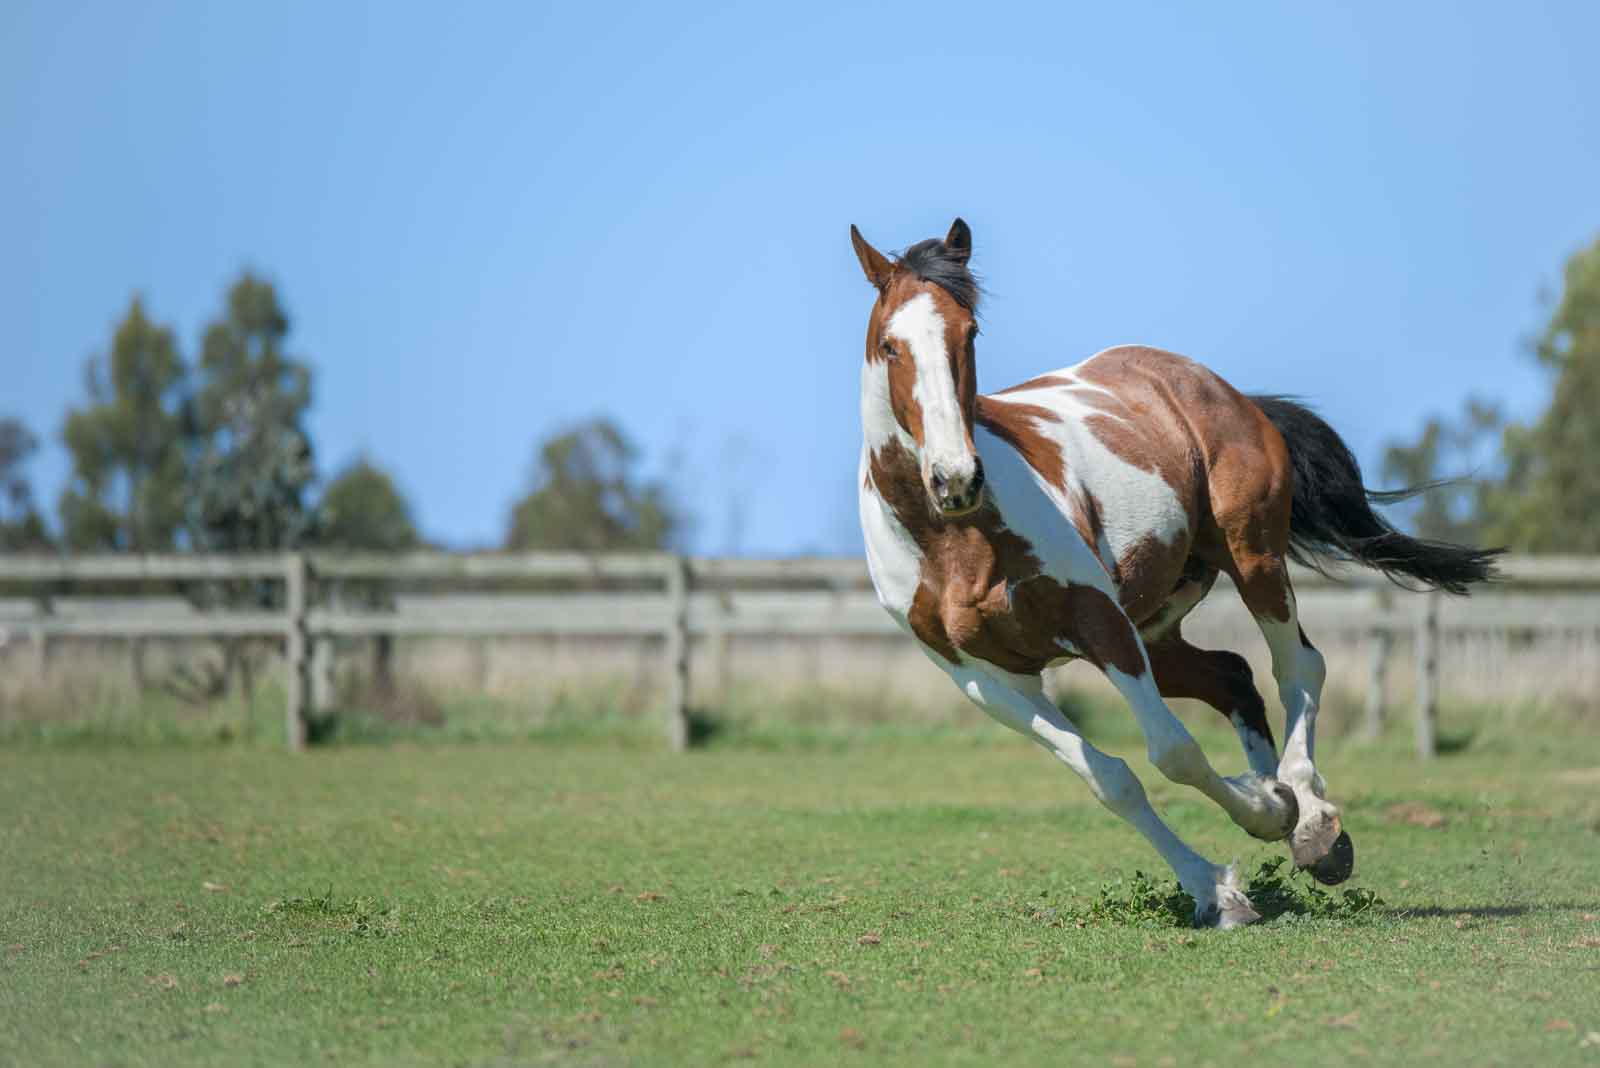 A lovely horse named Chip gallops across a field.